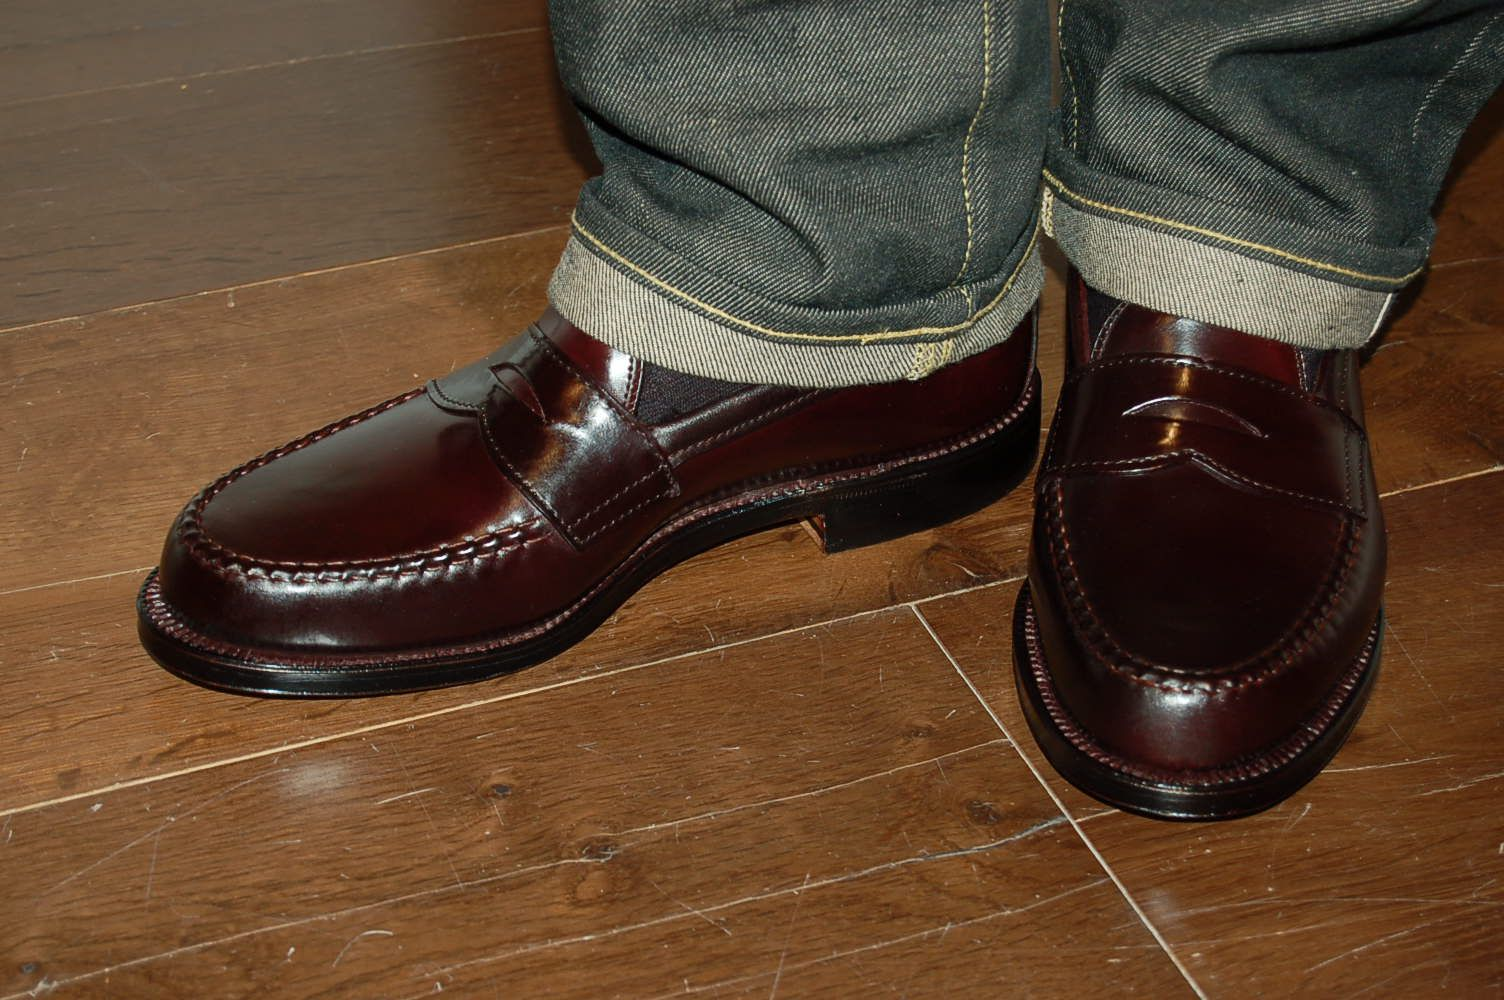 38c824b3854 Alden color  8 shell cordovan leisure handsewn penny loafers.